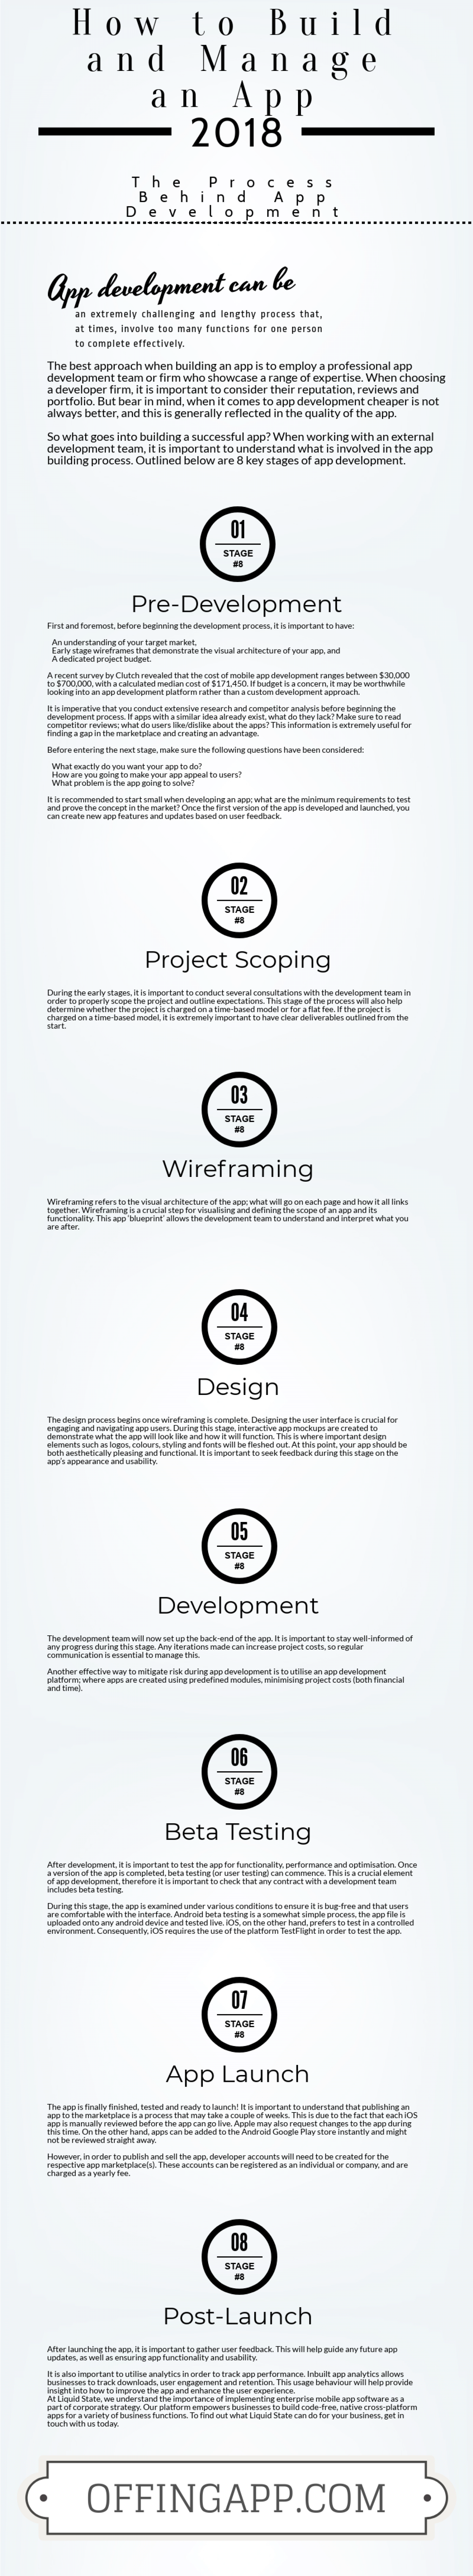 The Process Behind App Development Infographic